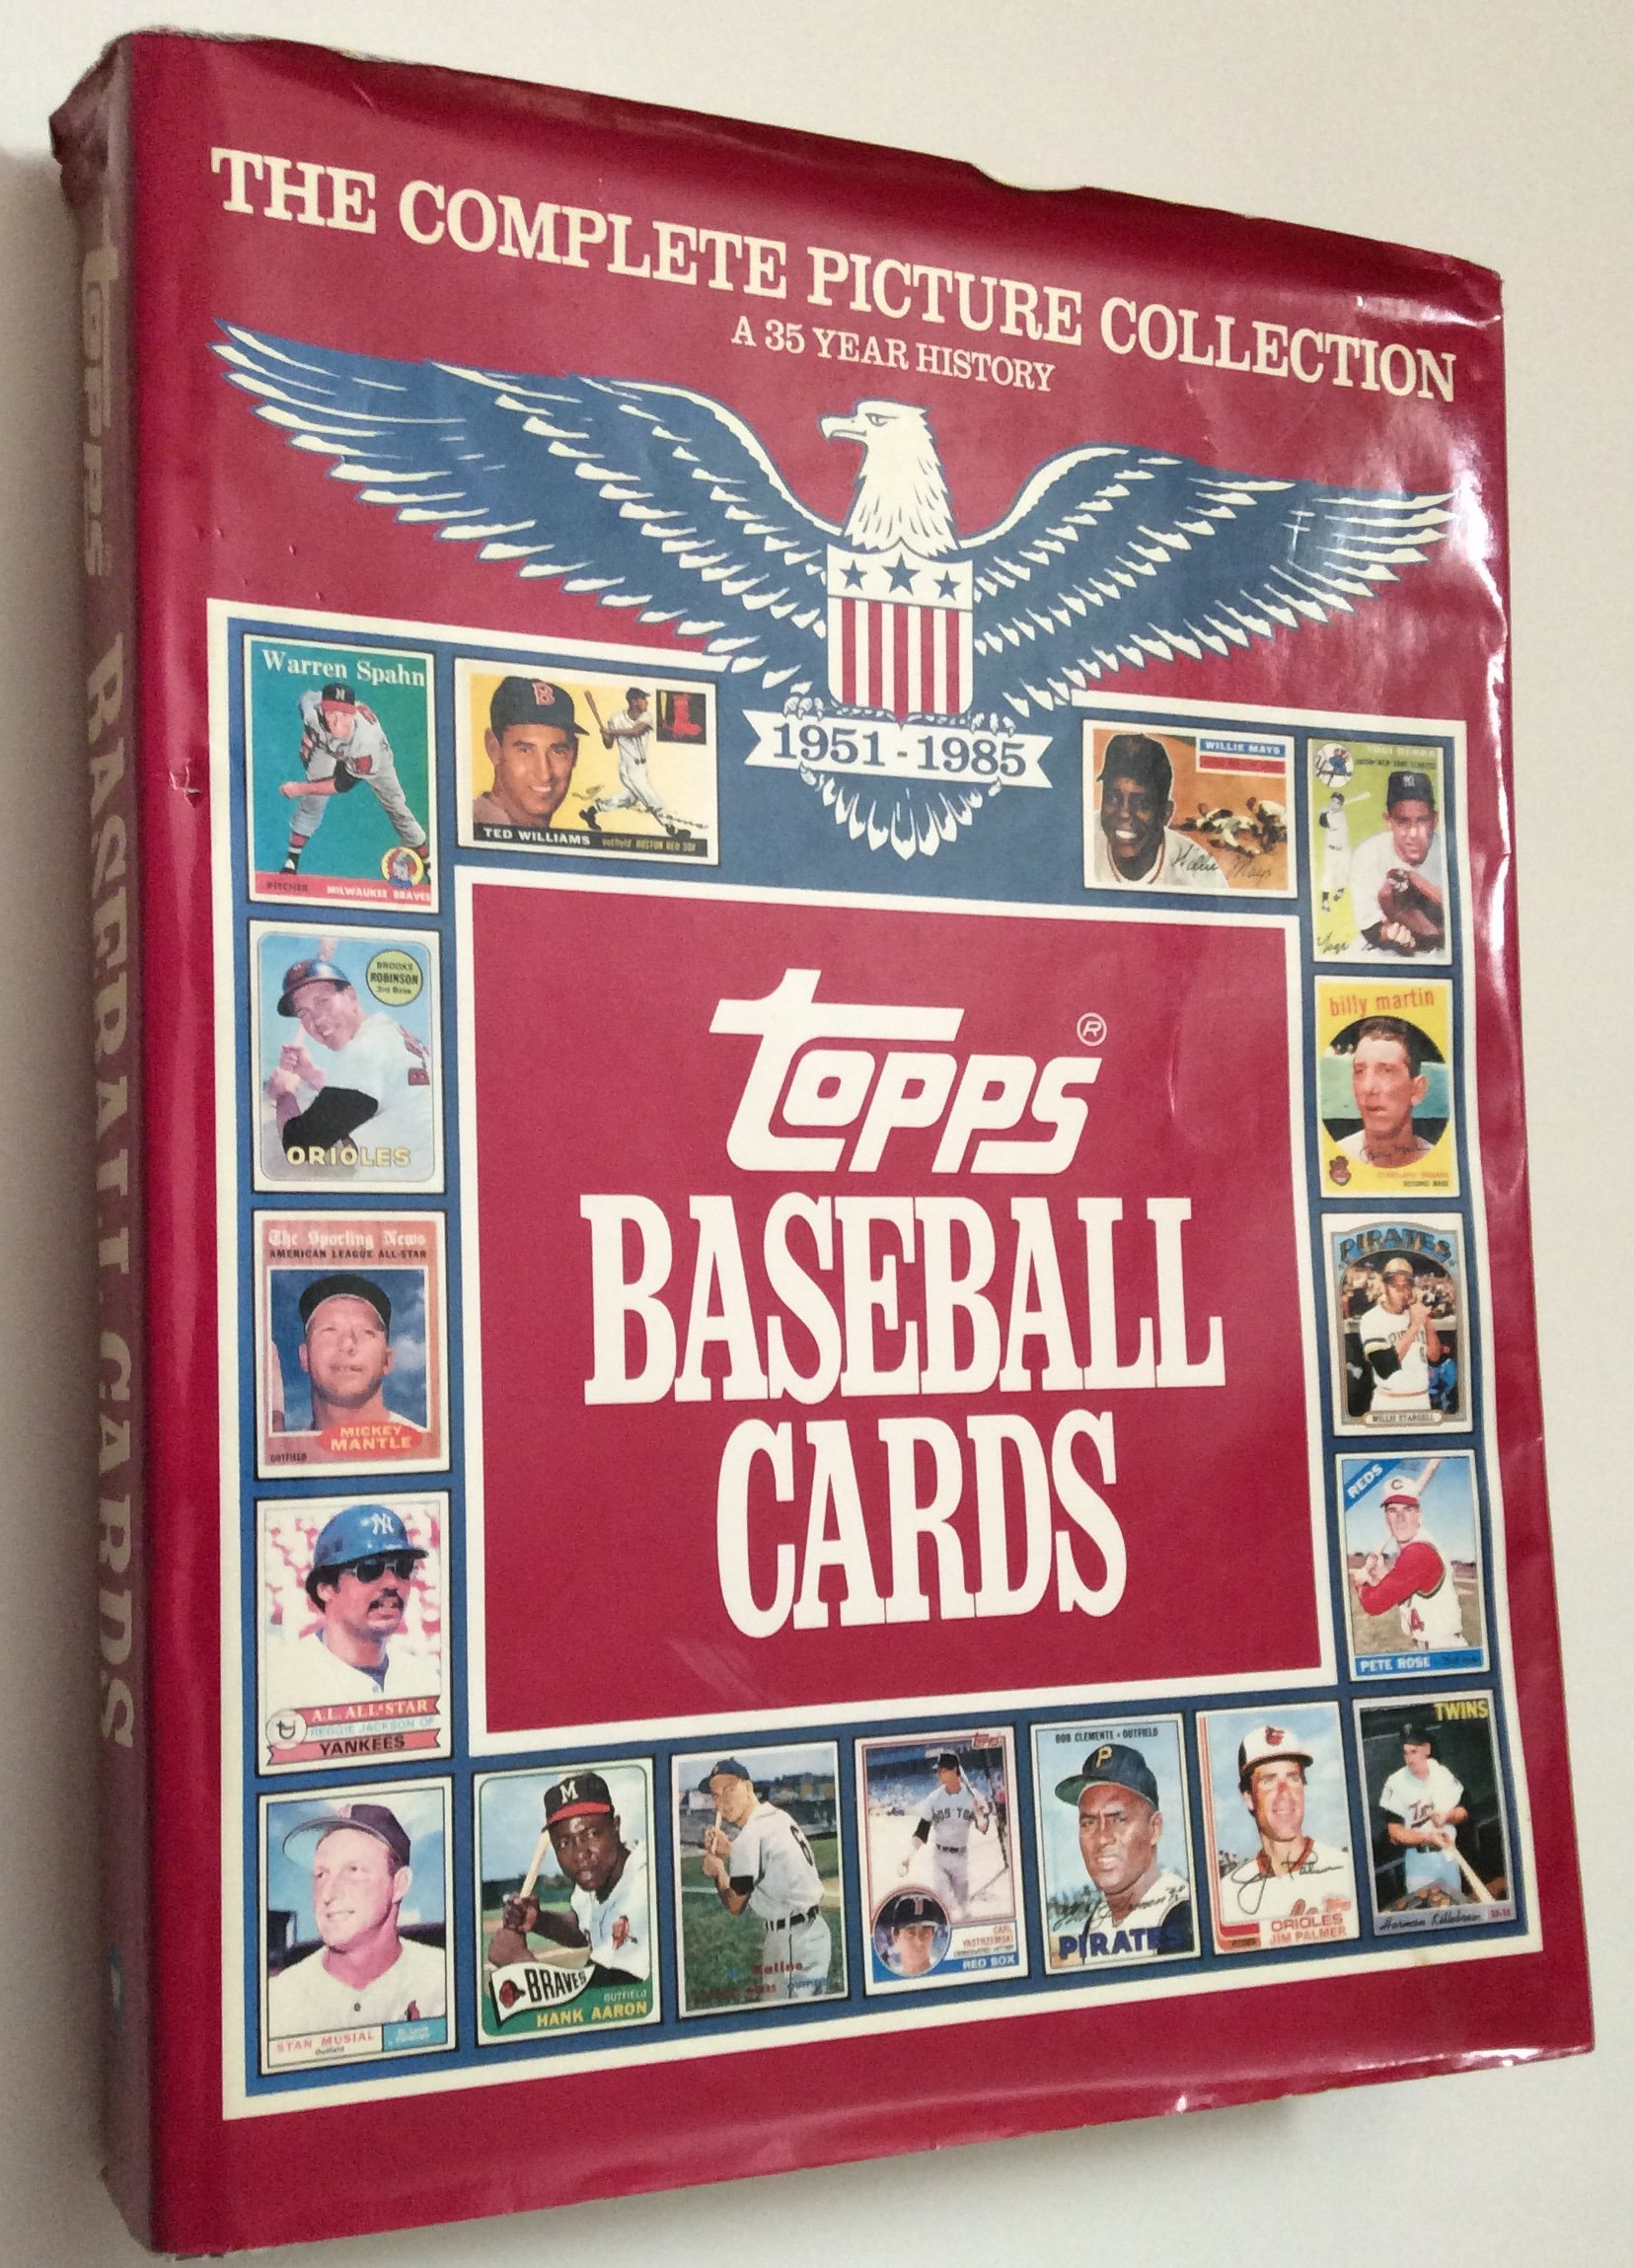 The Complete Picture Collection A 35 Year History 1951 1985 Topps